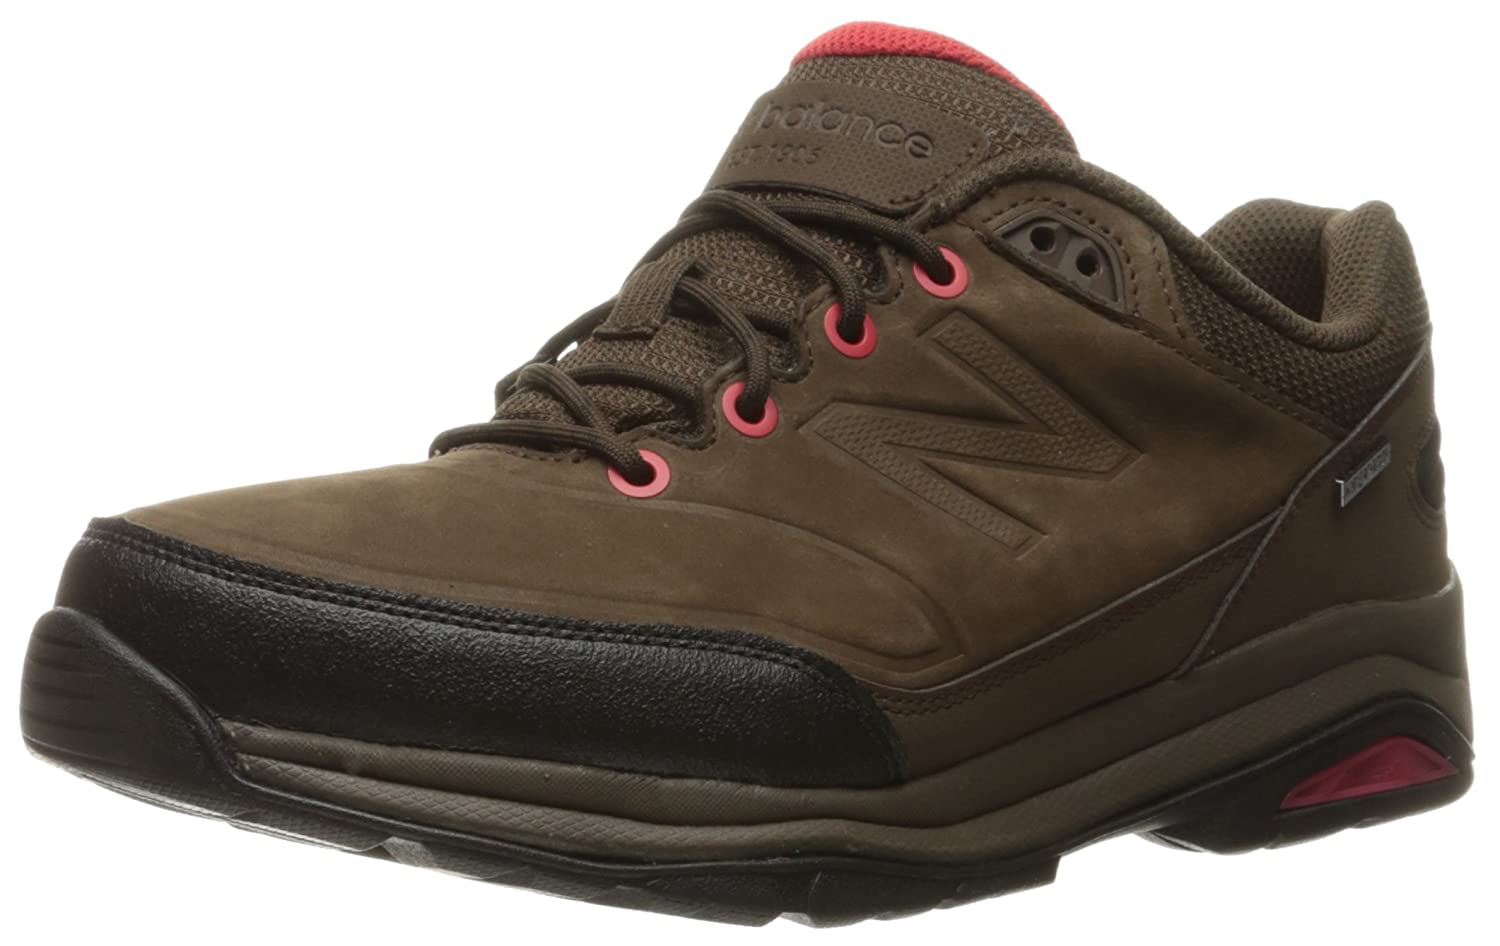 New Balance Men's 1300 Trail Walking Shoe B019EEEJLS 10 D(M) US|Brown/Red